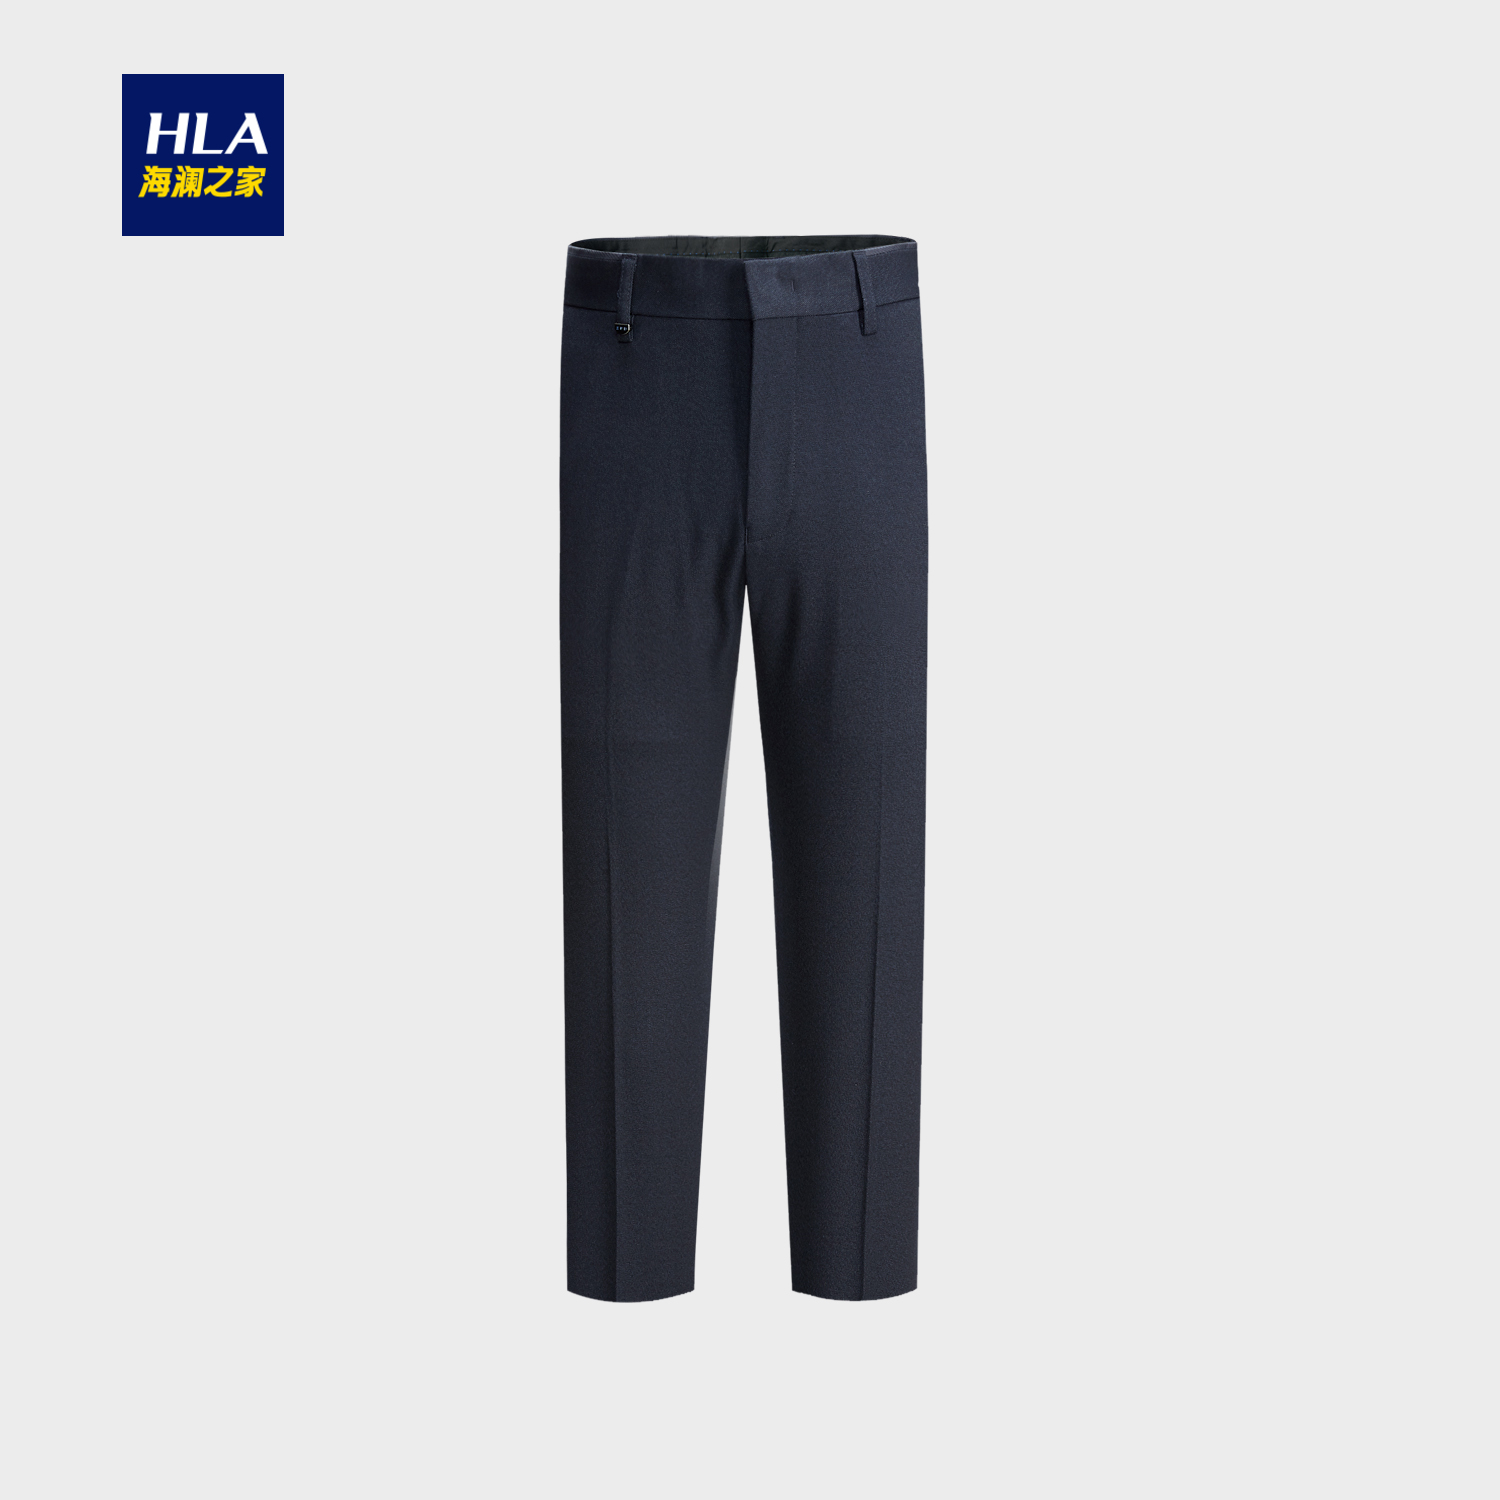 Western-style trousers HLA / Hailan home Business gentleman Zang Qing 53 165/72A HKXAD3E053A Polyester fiber 70% viscose fiber (viscose fiber) 24% polyurethane elastic fiber (spandex) 6% Autumn of 2018 Same model in shopping mall (sold online and offline)